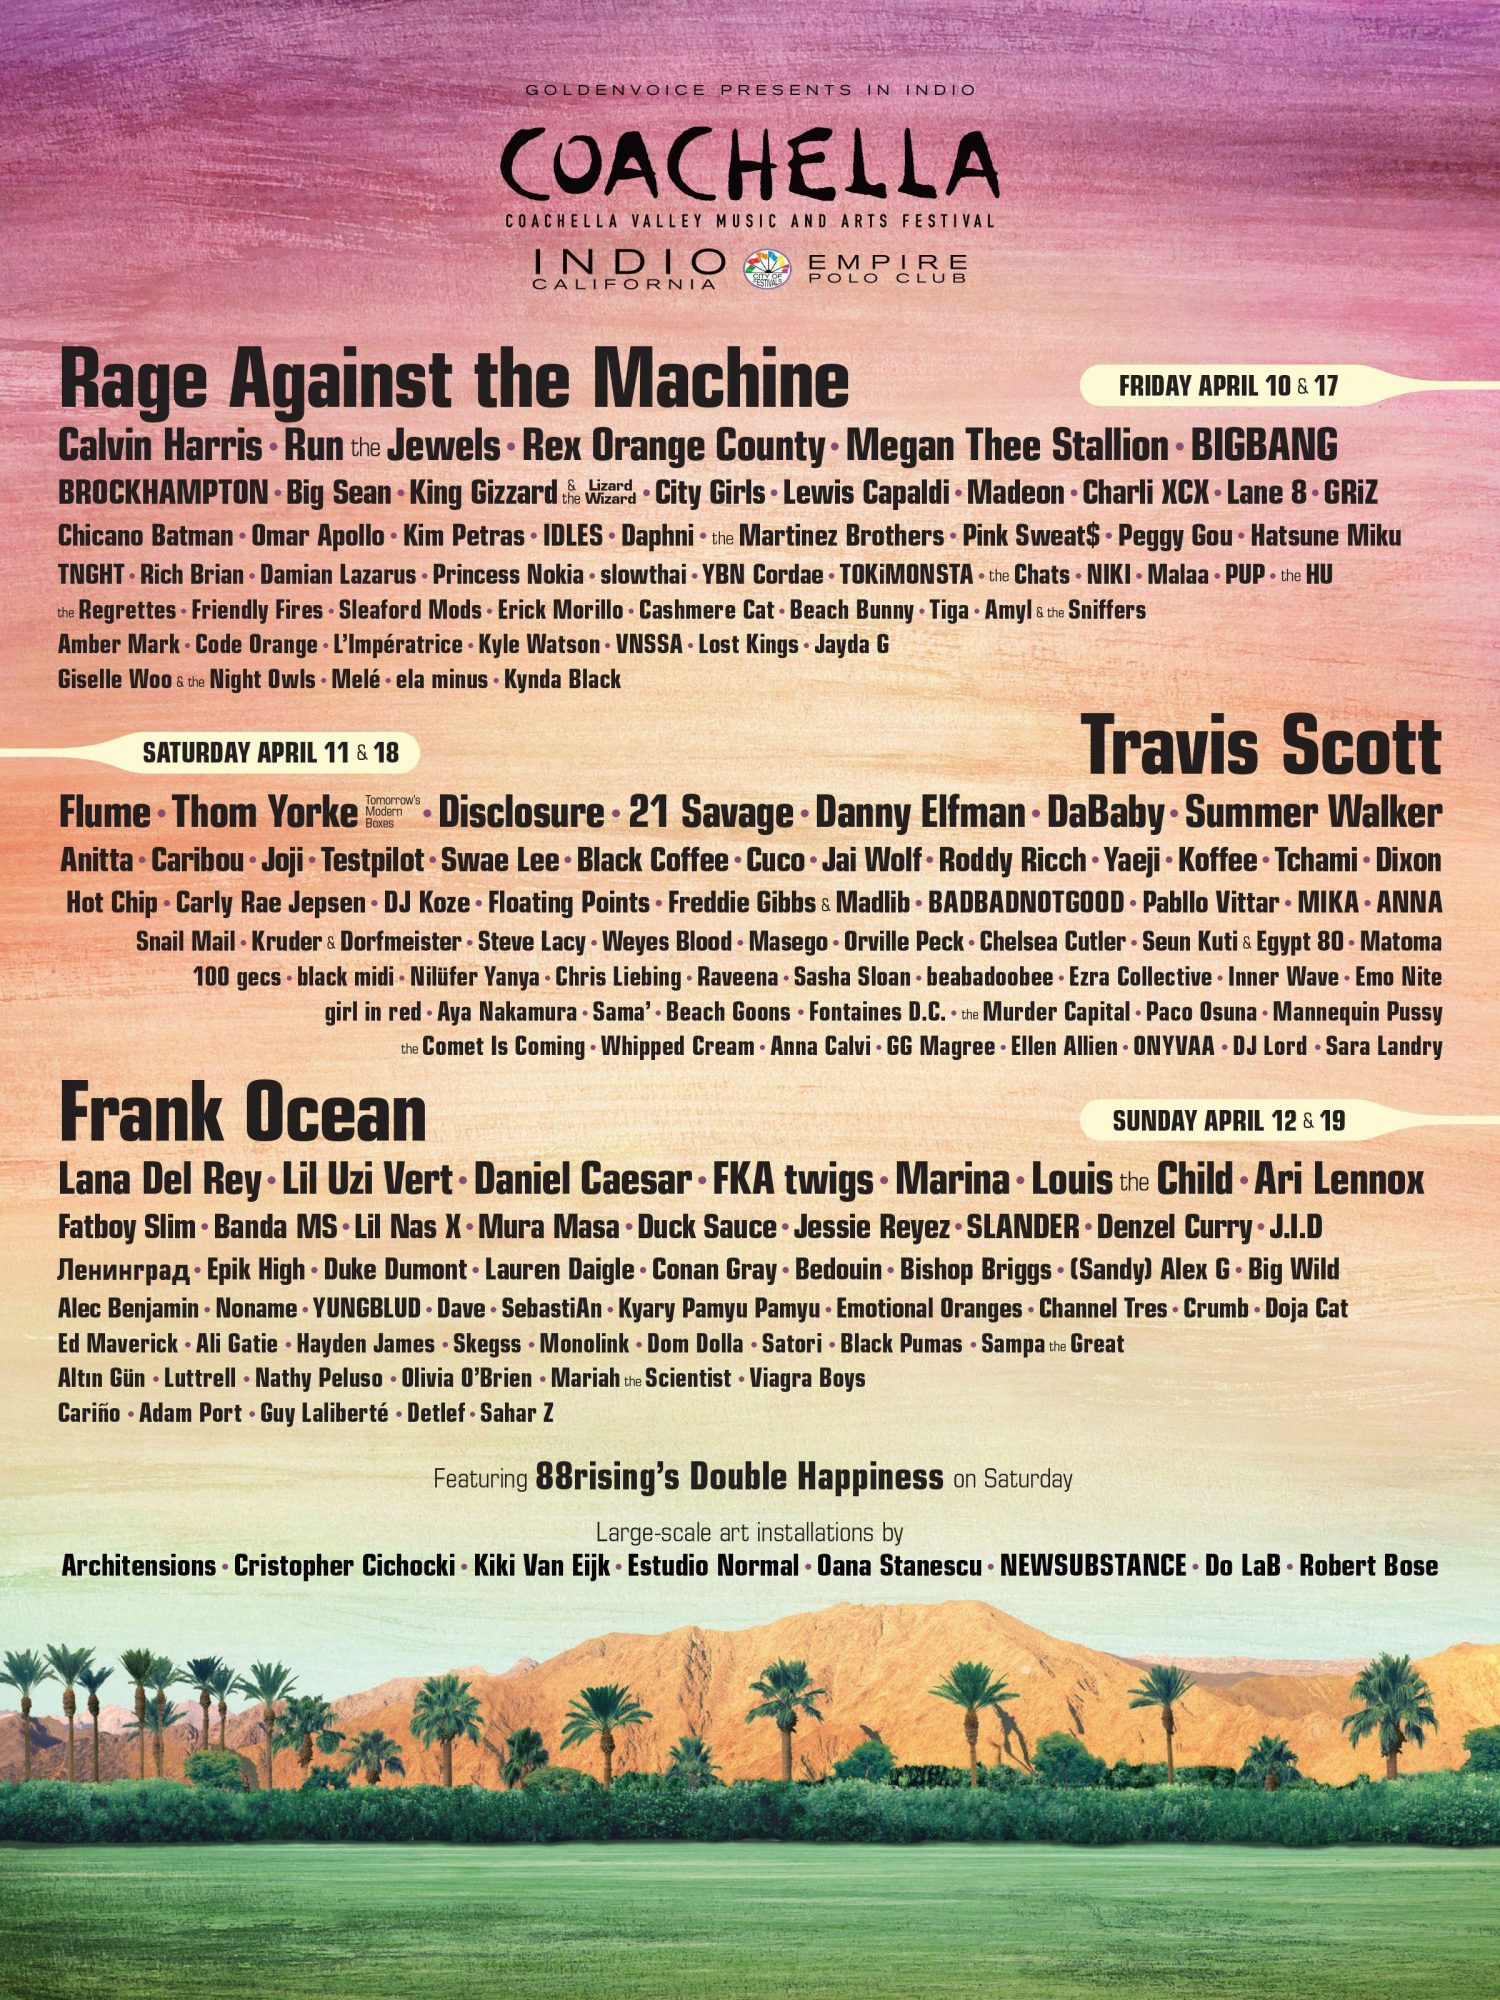 Rage Against the Machine, Yungblud, PUP and more are playing Coachella 2020